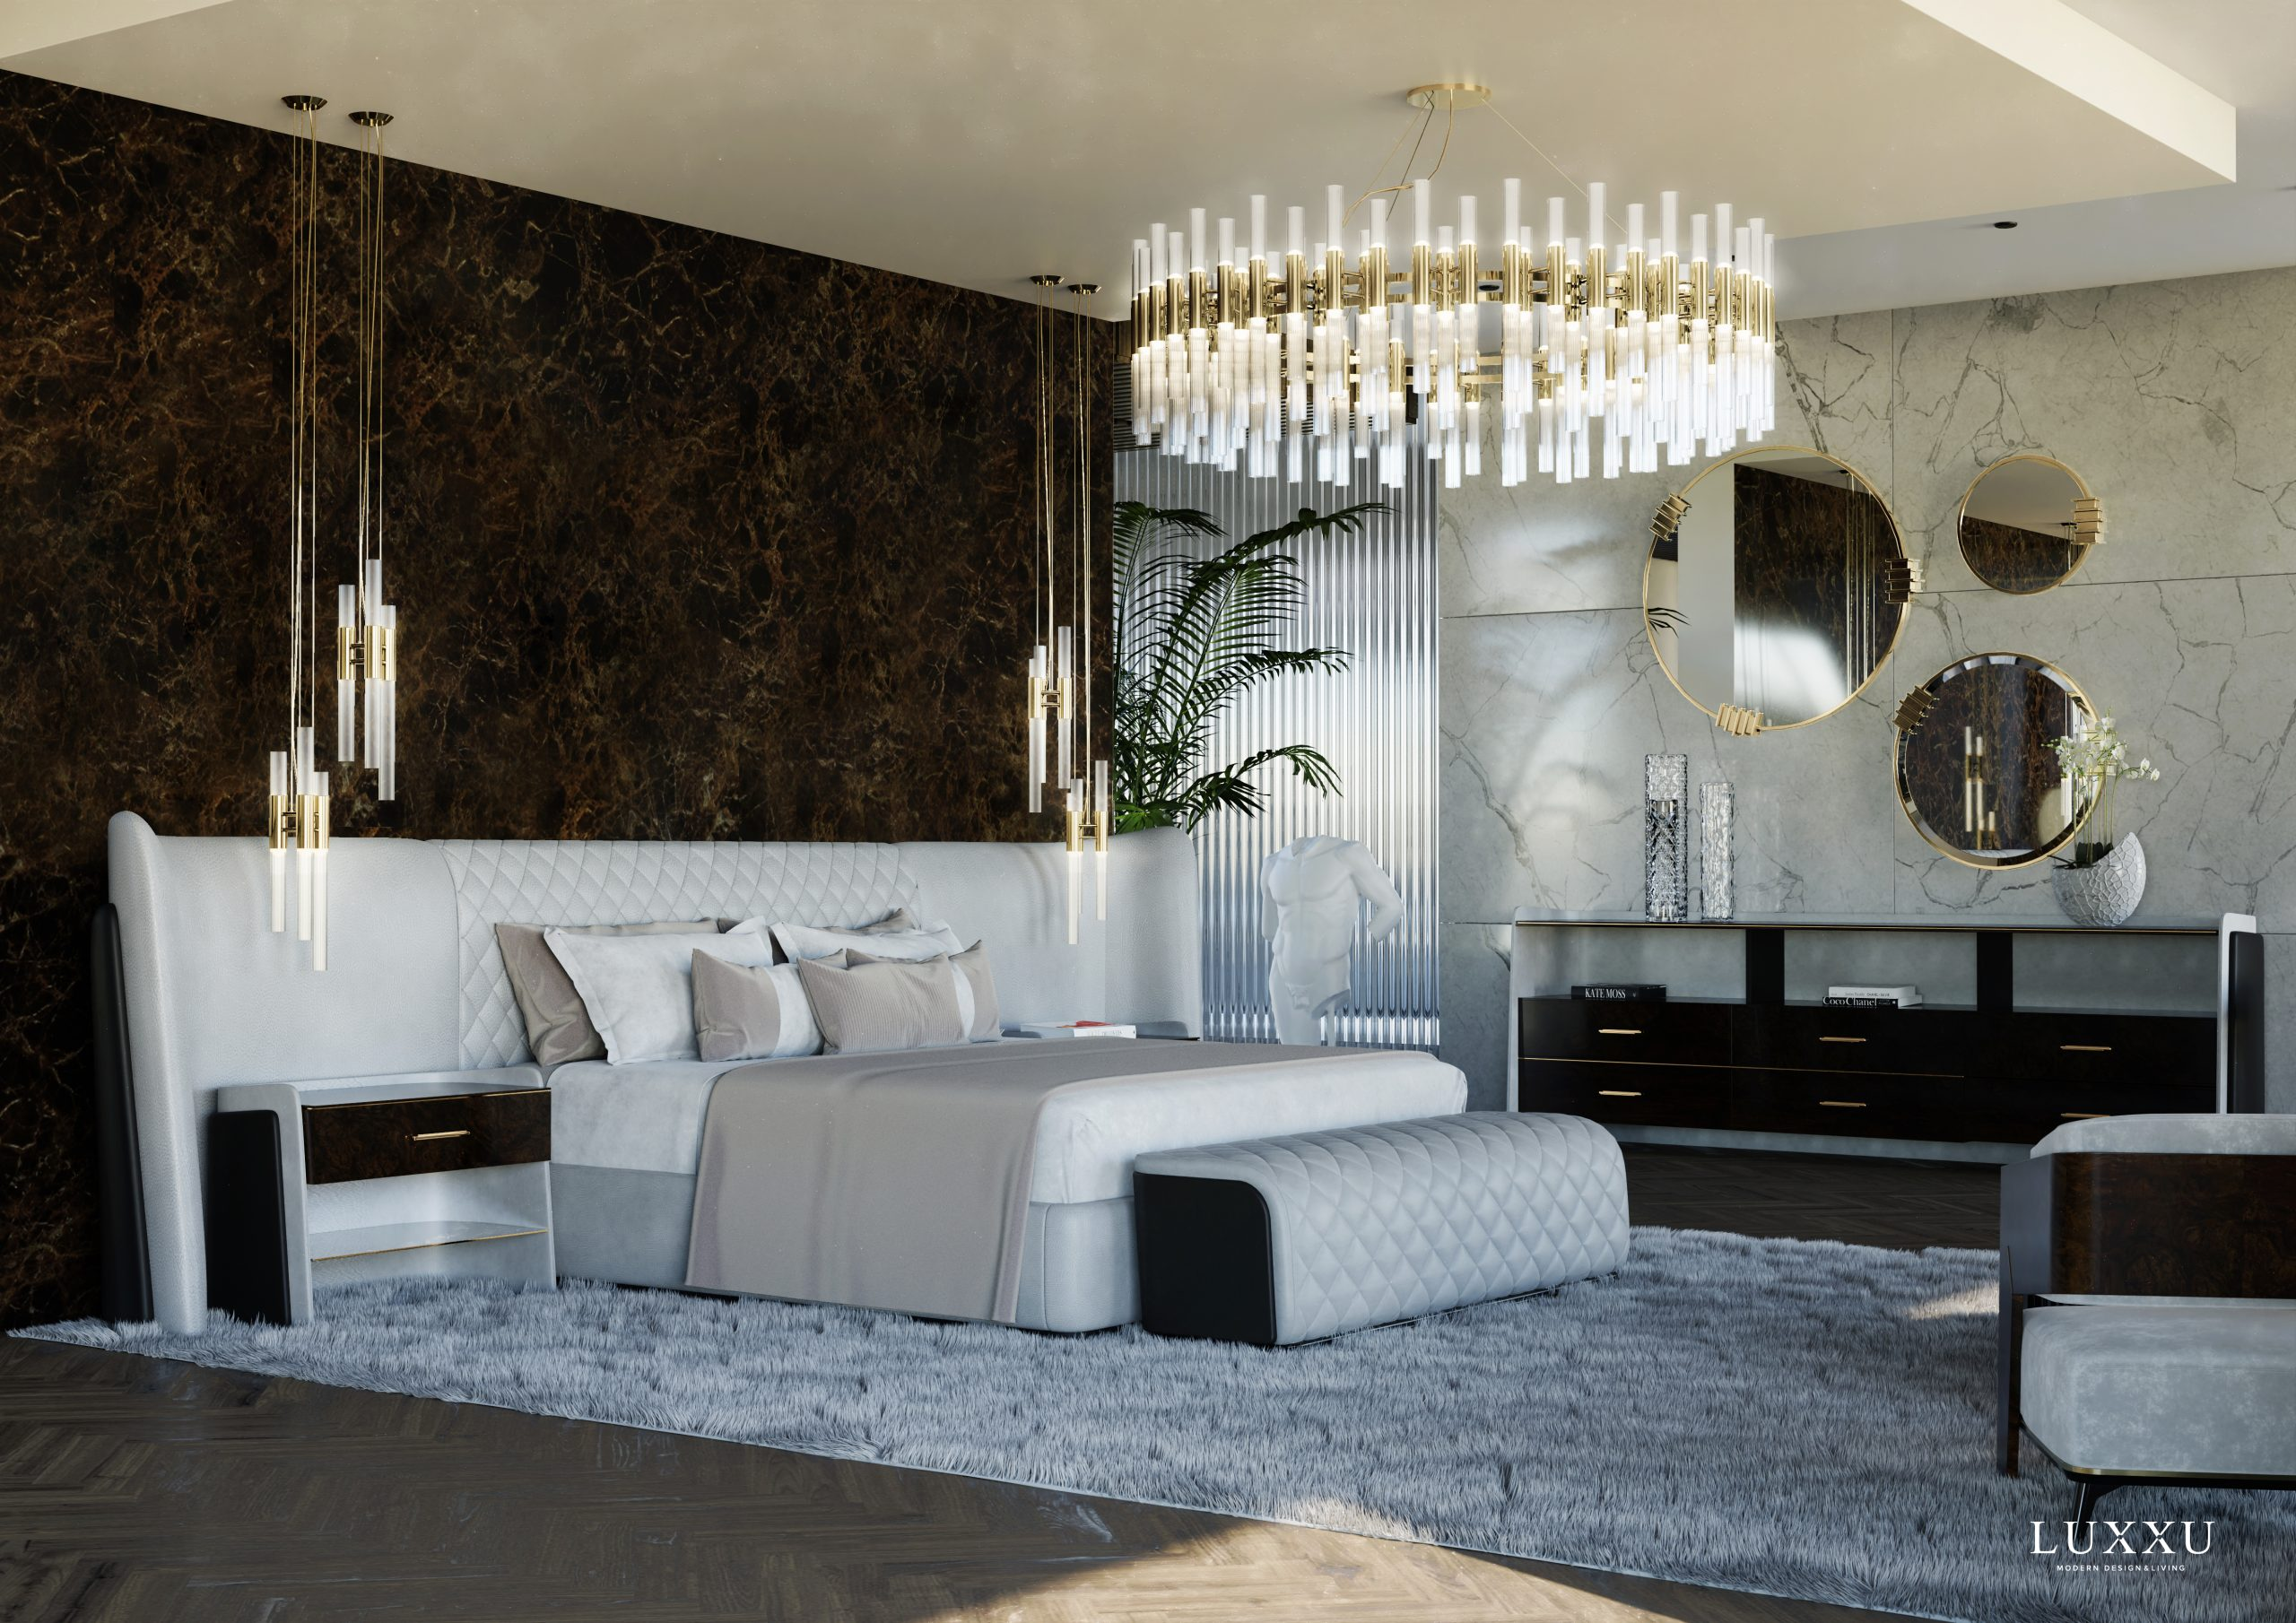 Luxxu In XL - The Pieces That Resized Their Luxury